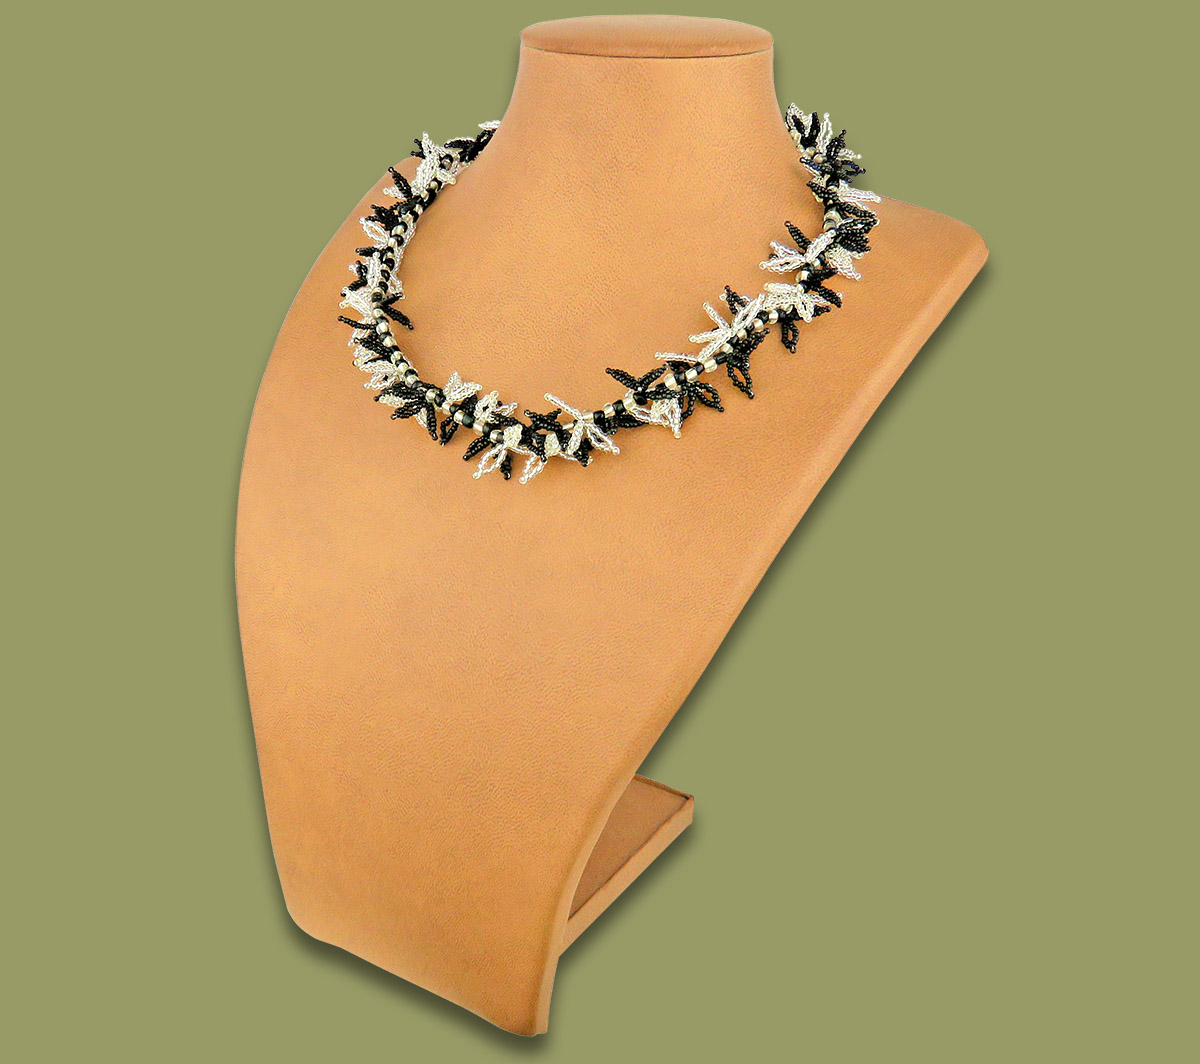 African Beaded Necklace Moyo Silver Black